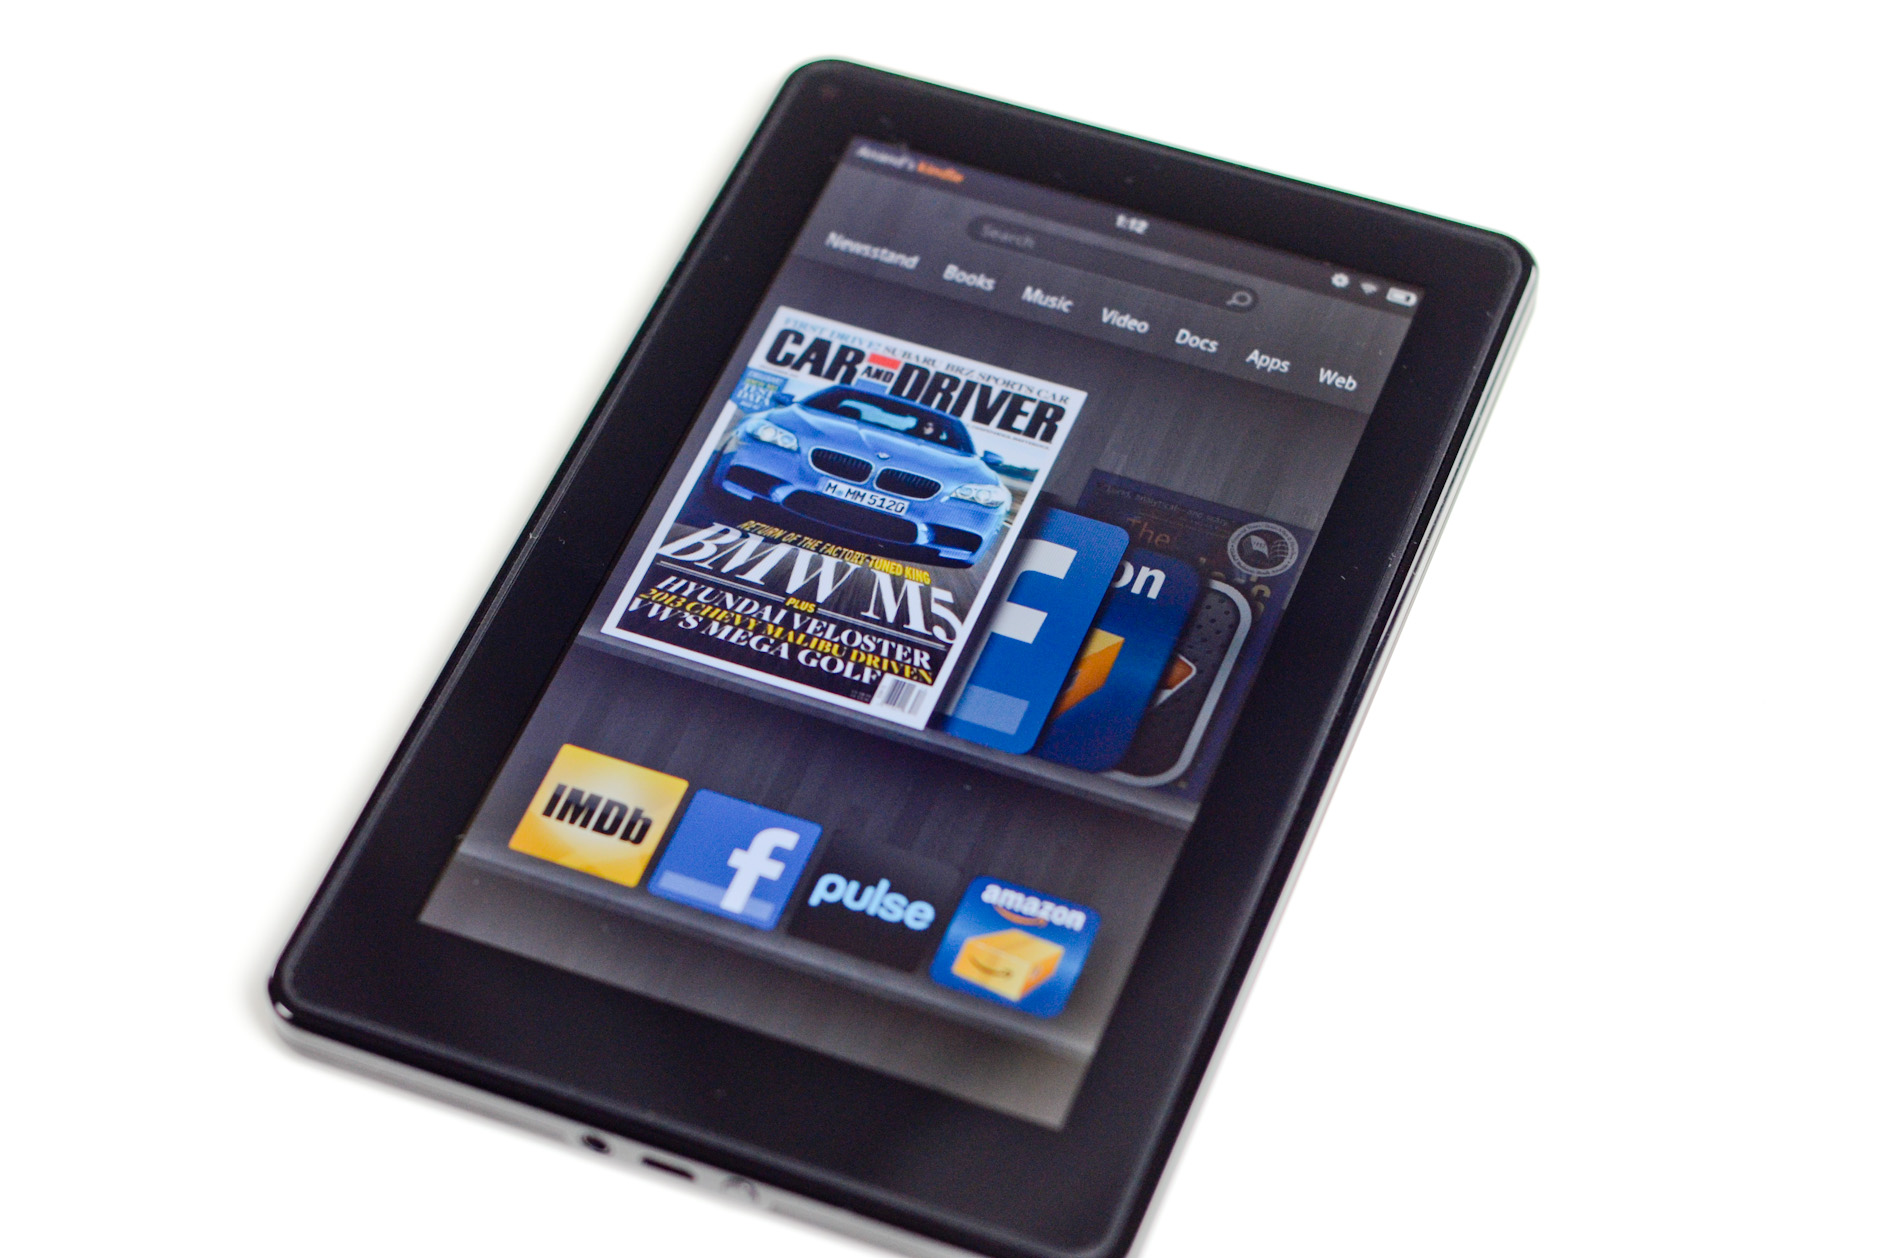 The Kindle Fire serves entirely different purposes than to take